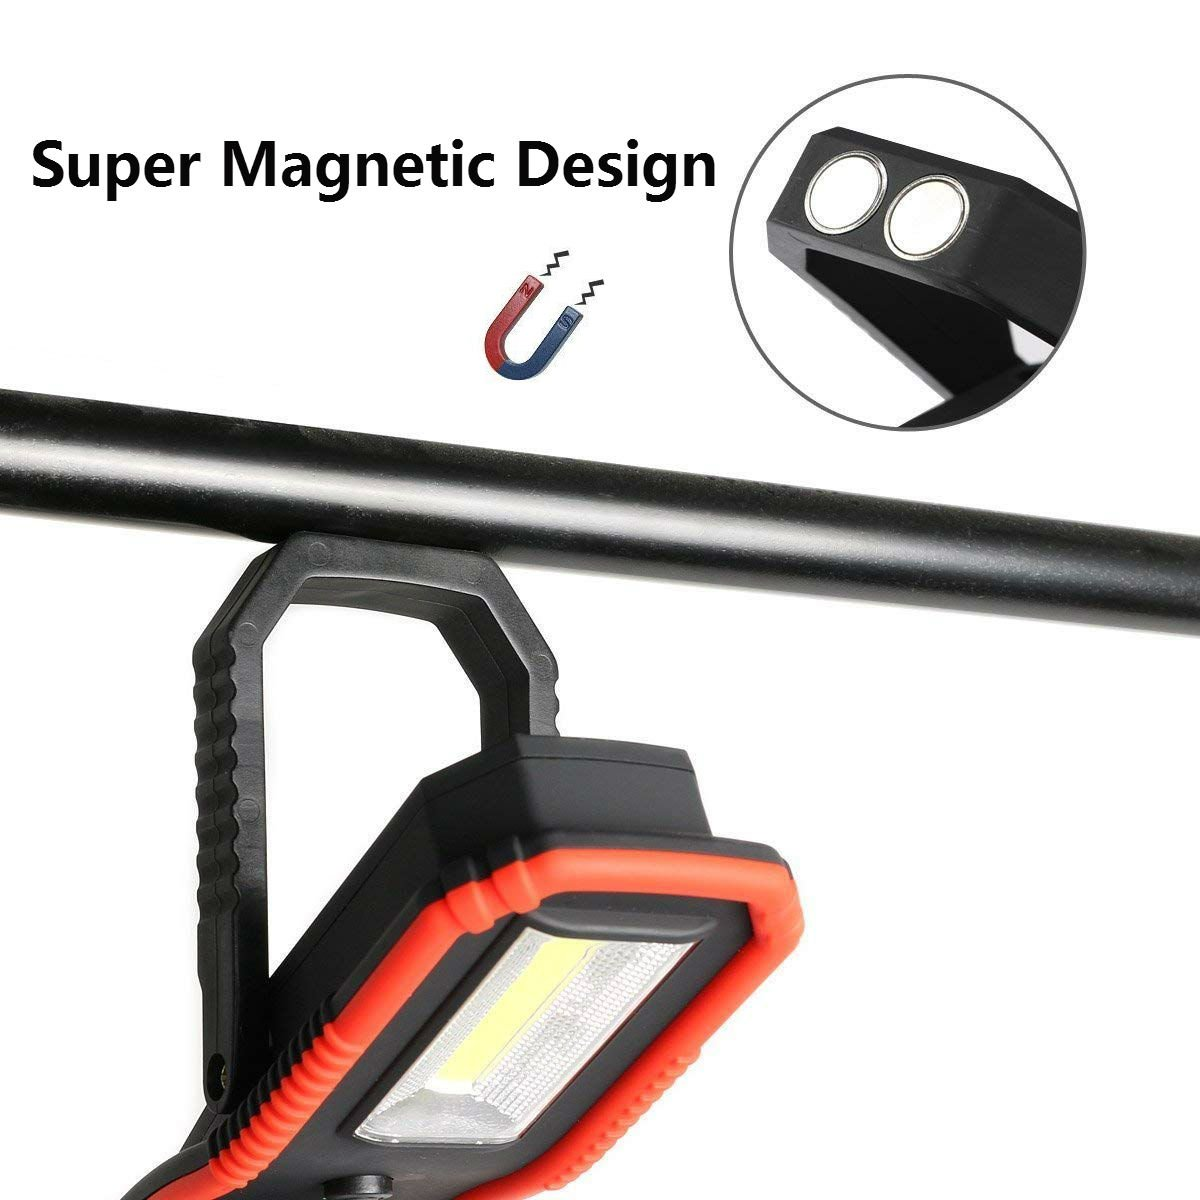 Portable LED Camping Light Work Light with Magnetic Base Stand & Hanging Hook Spotlight &Floodlight Ultra Bright for Car Repairing/Travel/Emergencies